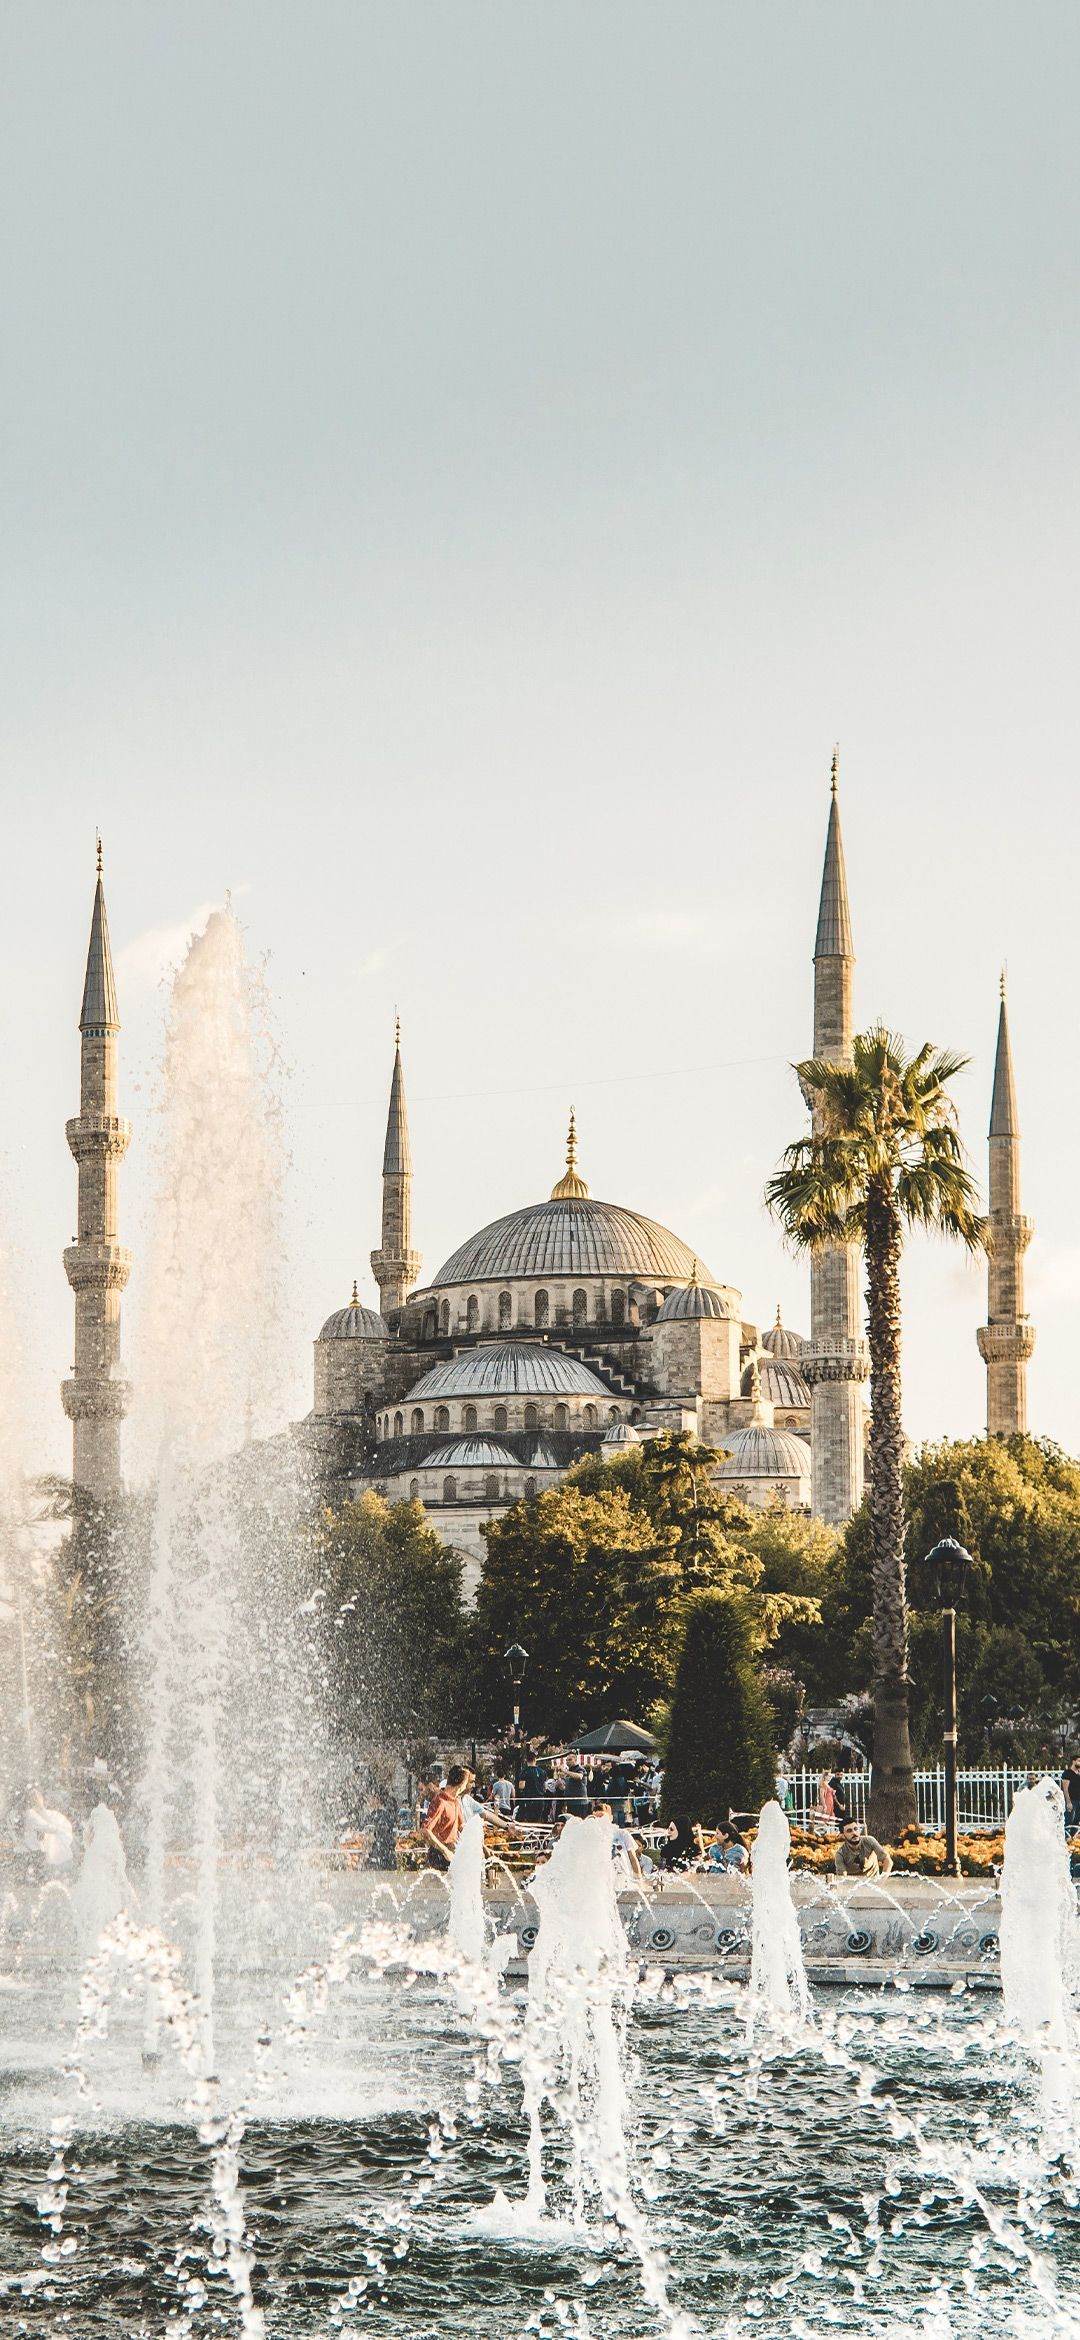 The Blue Mosque aka The Sultan Ahmed Mosque Smartphone Wallpaper #islam #islamicwallpaper Download Islamic Wallpaper App from PlayStore - Sharlene Lowery